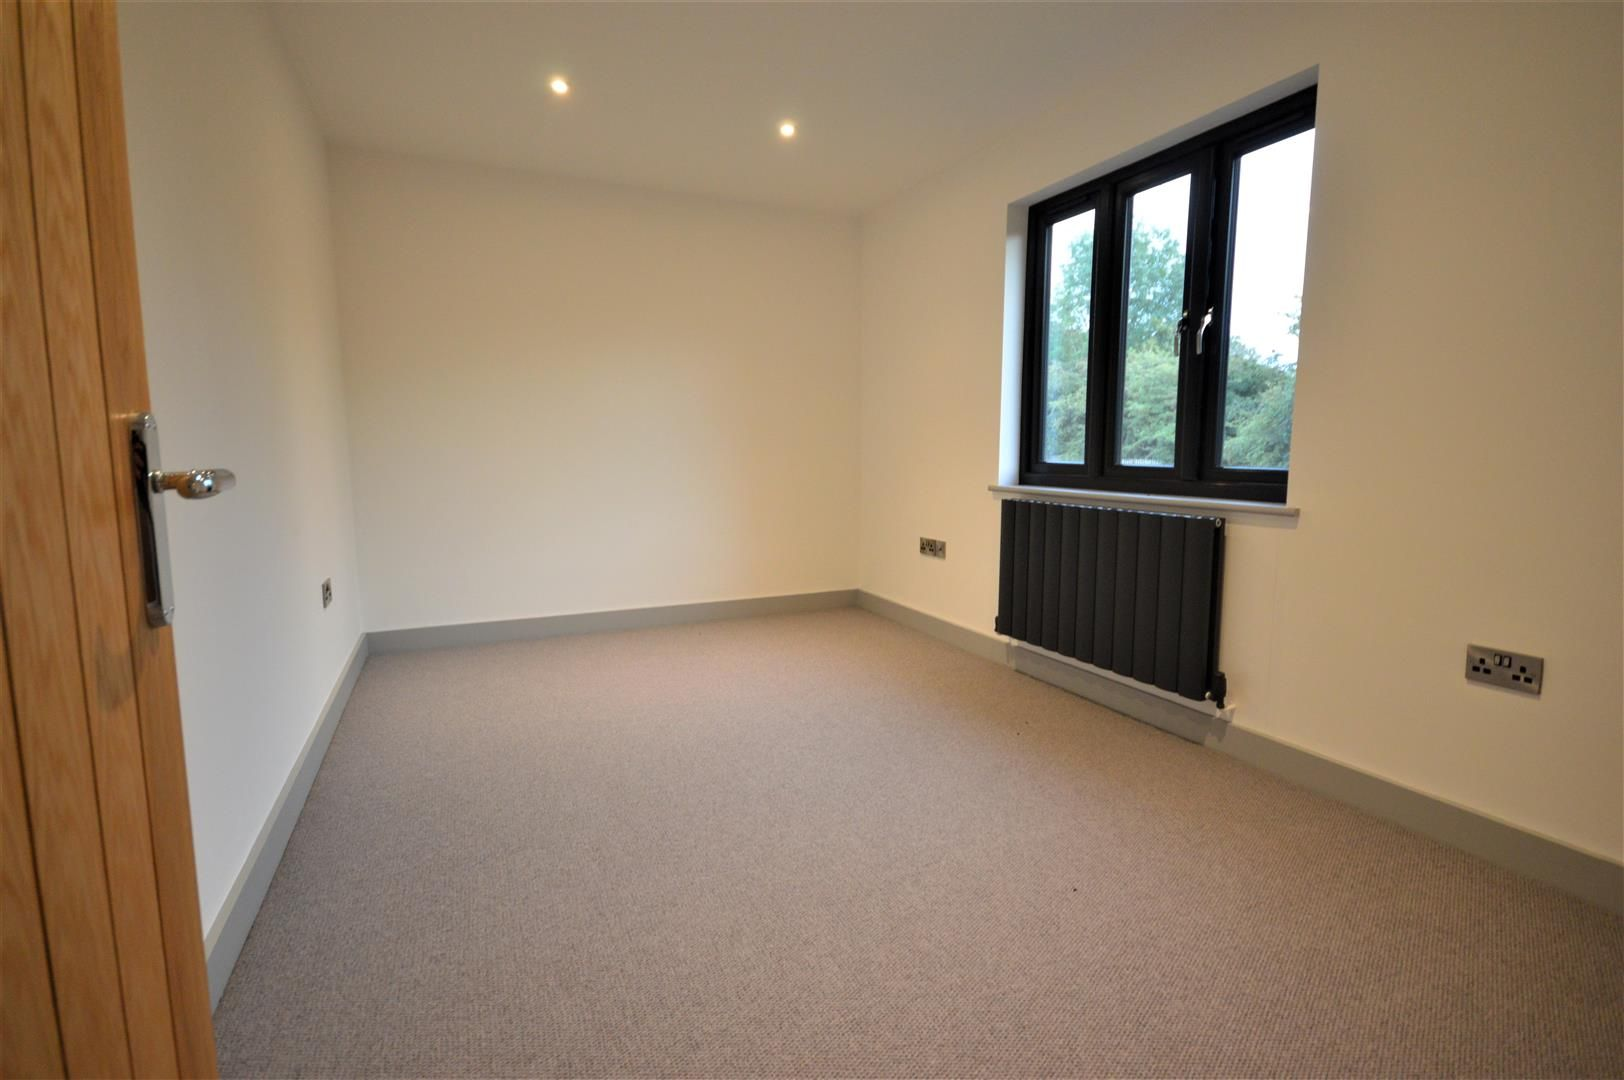 4 bed detached for sale in Brimfield  - Property Image 11